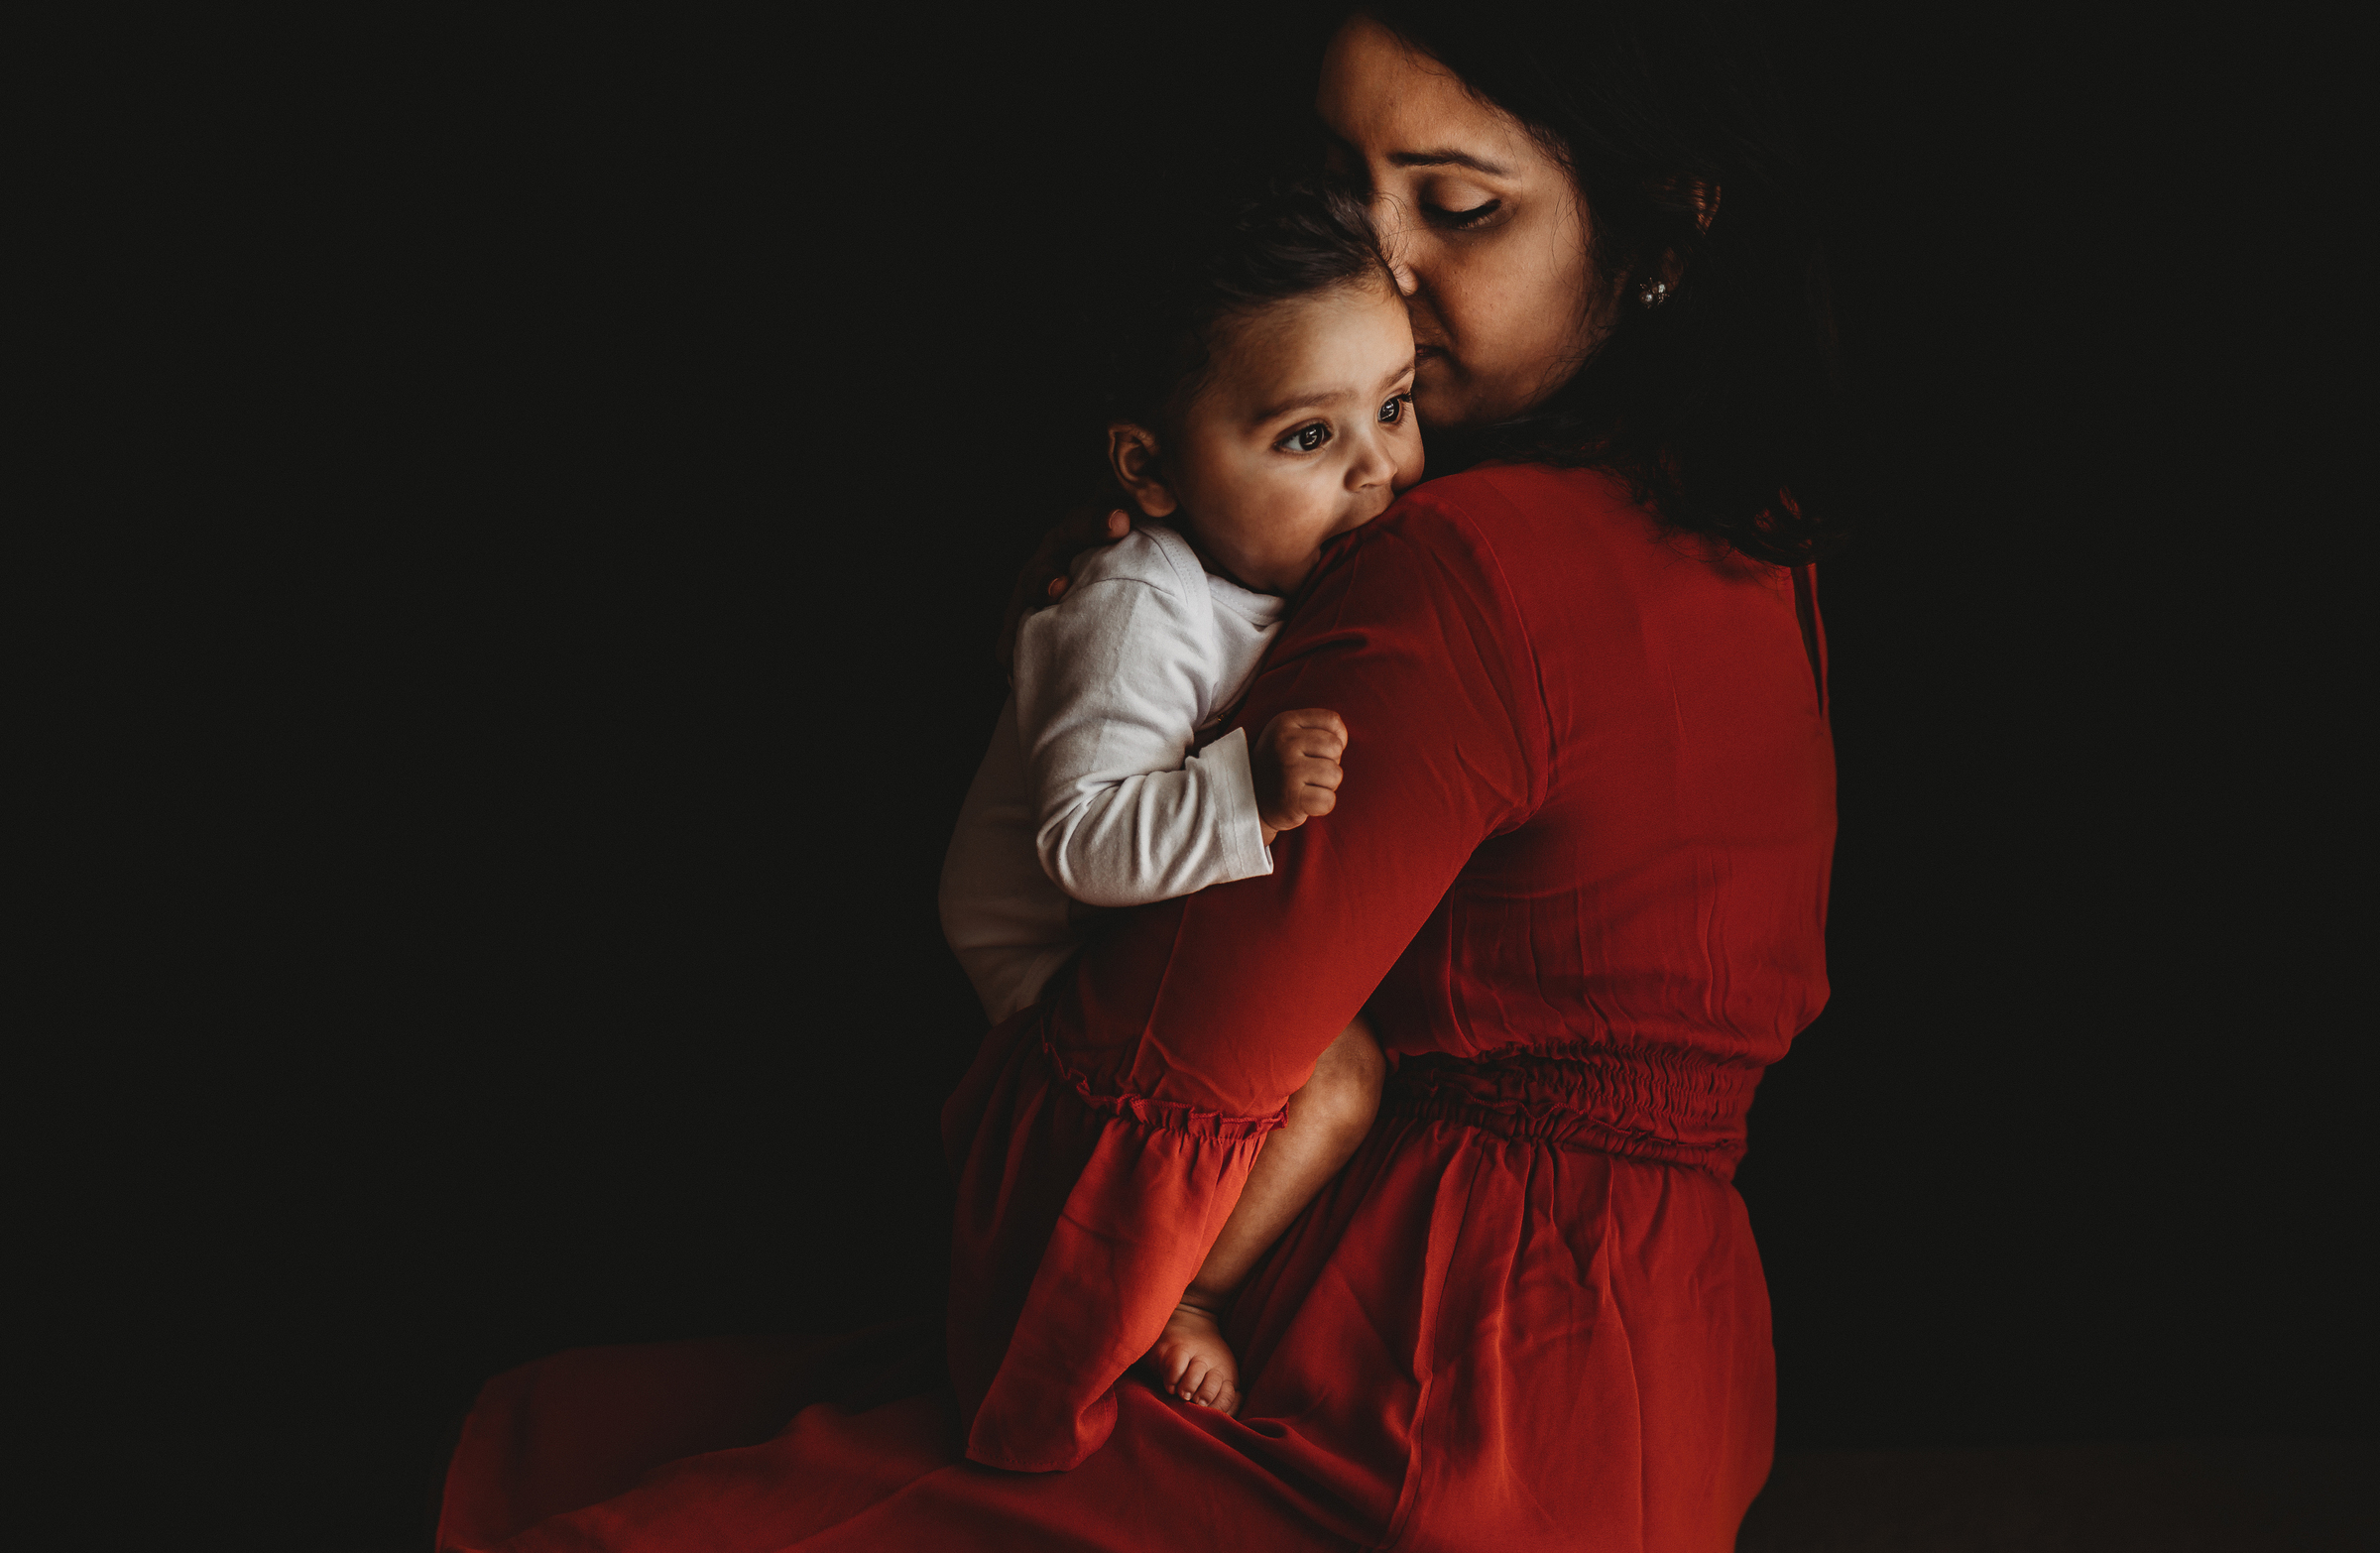 mother in red dress kissing baby self portrait jyo bhamidipati